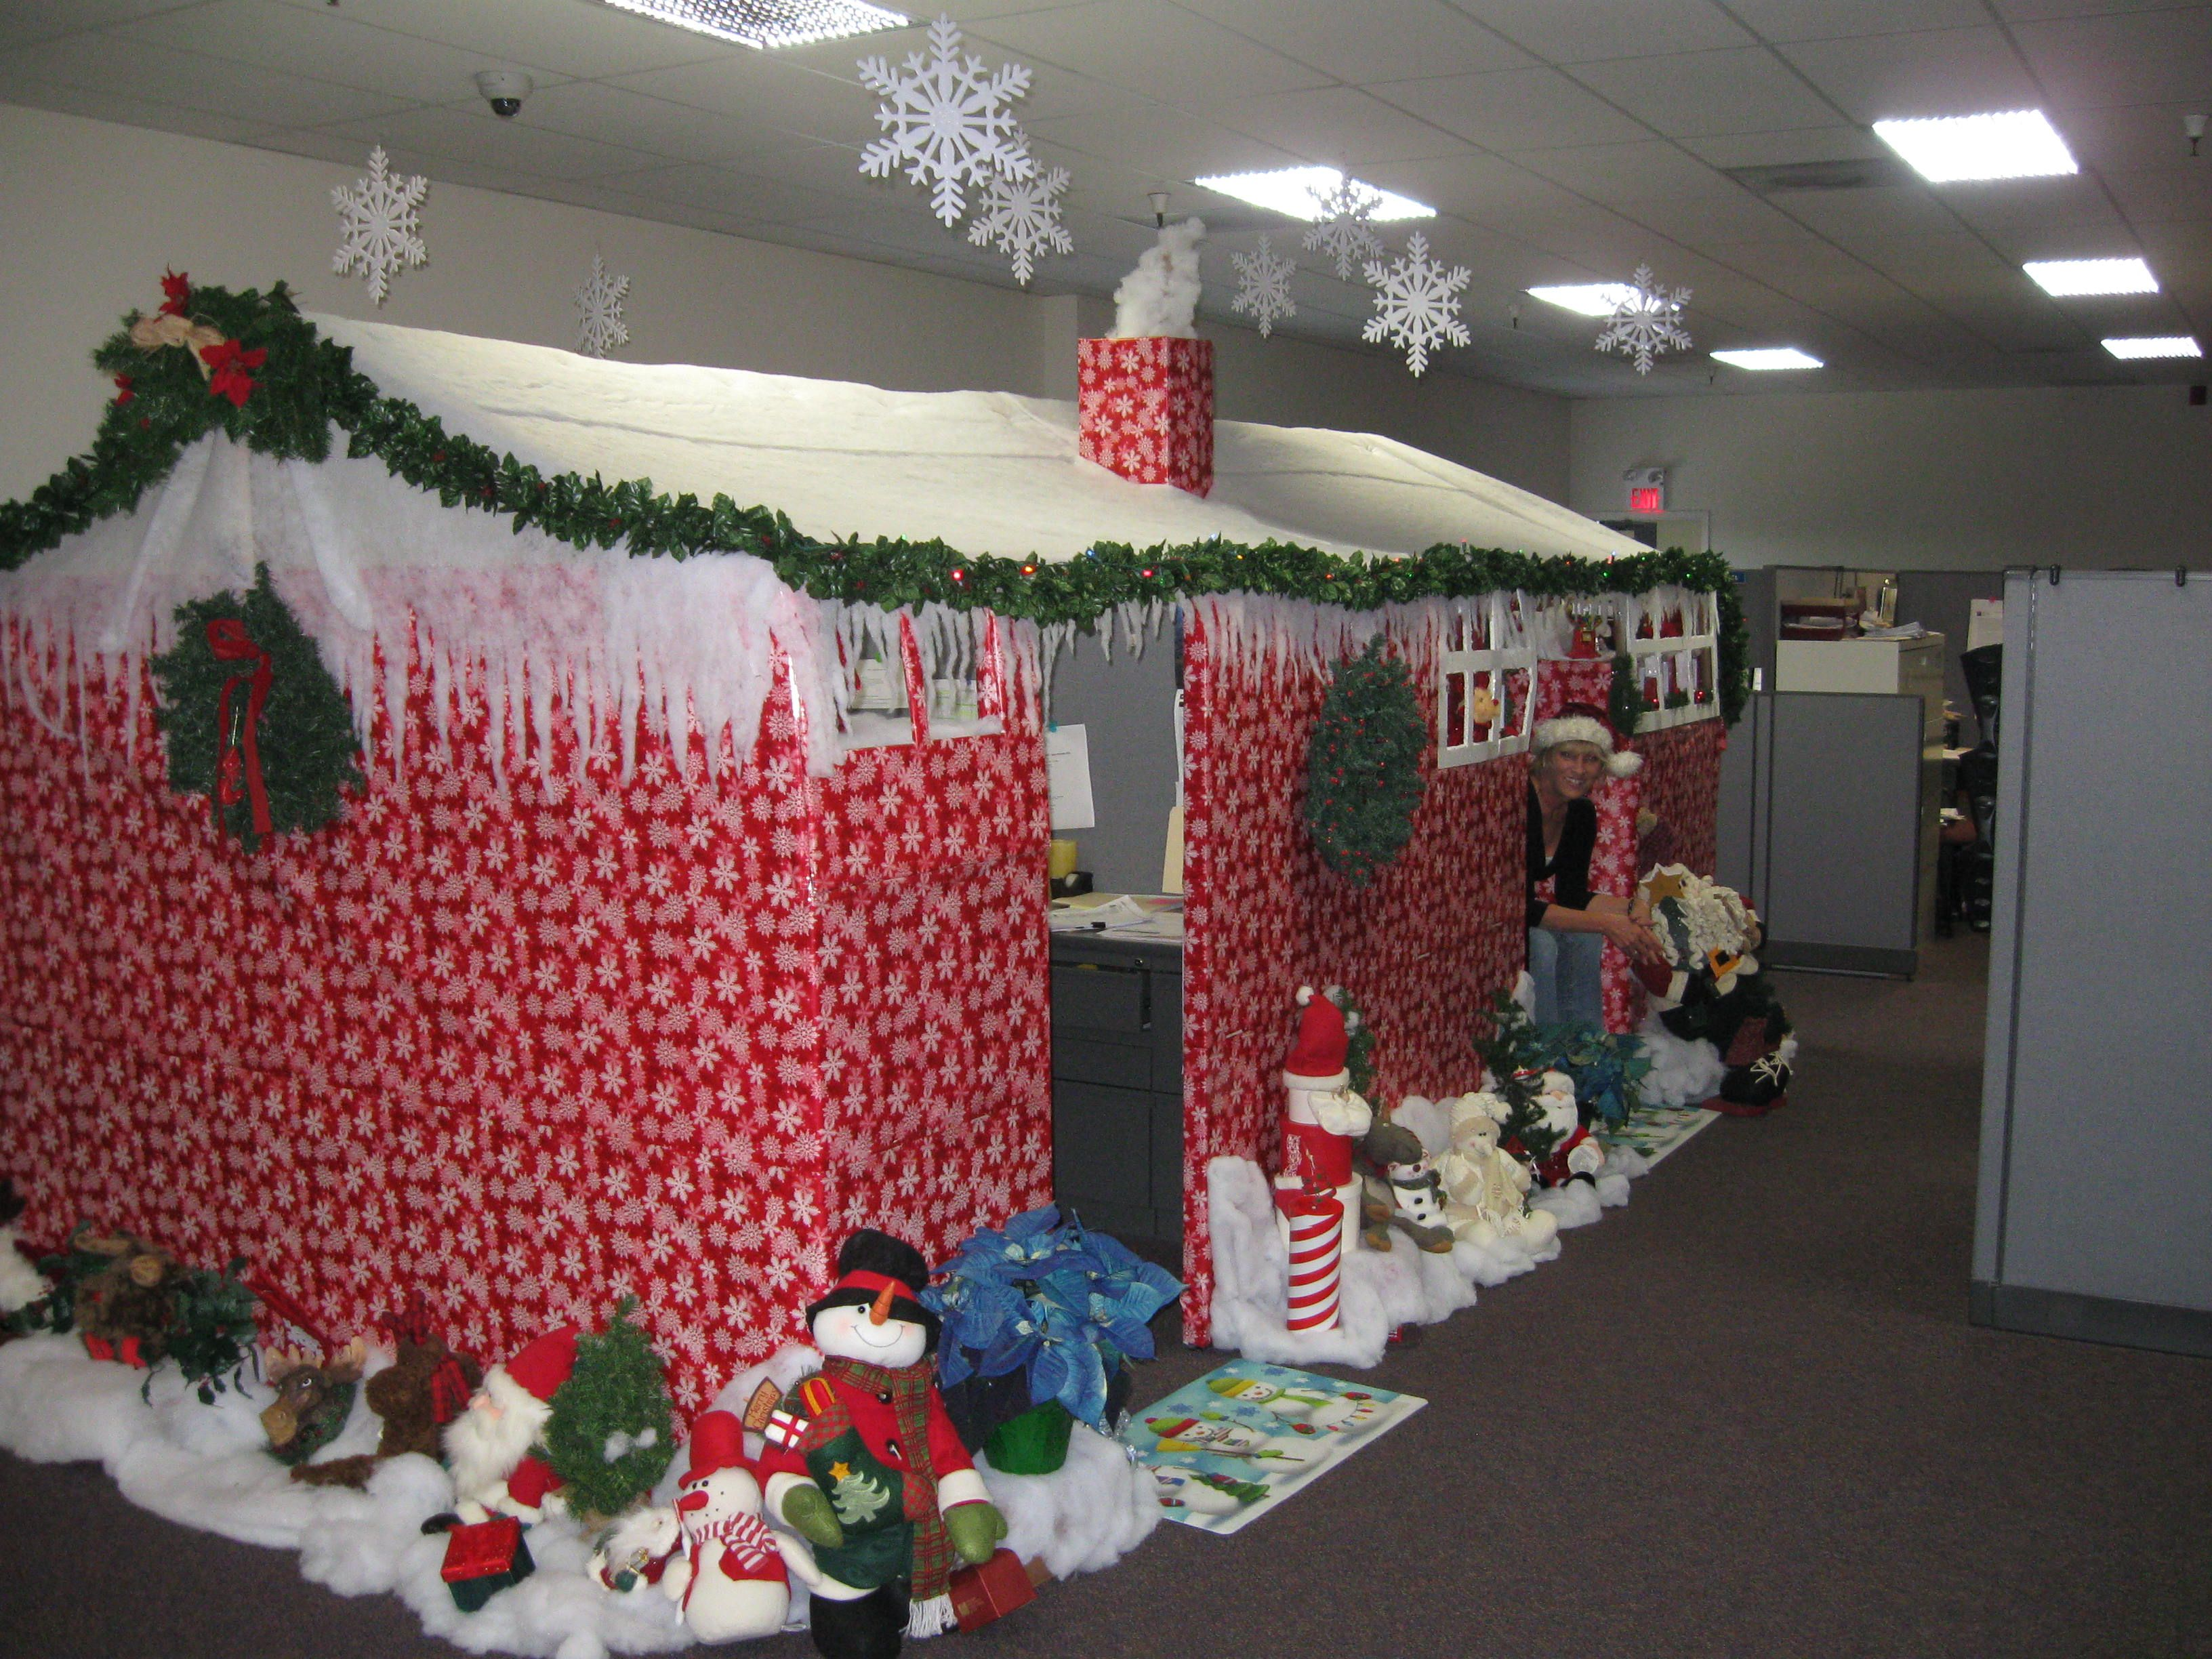 2 cubicles at work decorated for christmas - Christmas Office Decorations